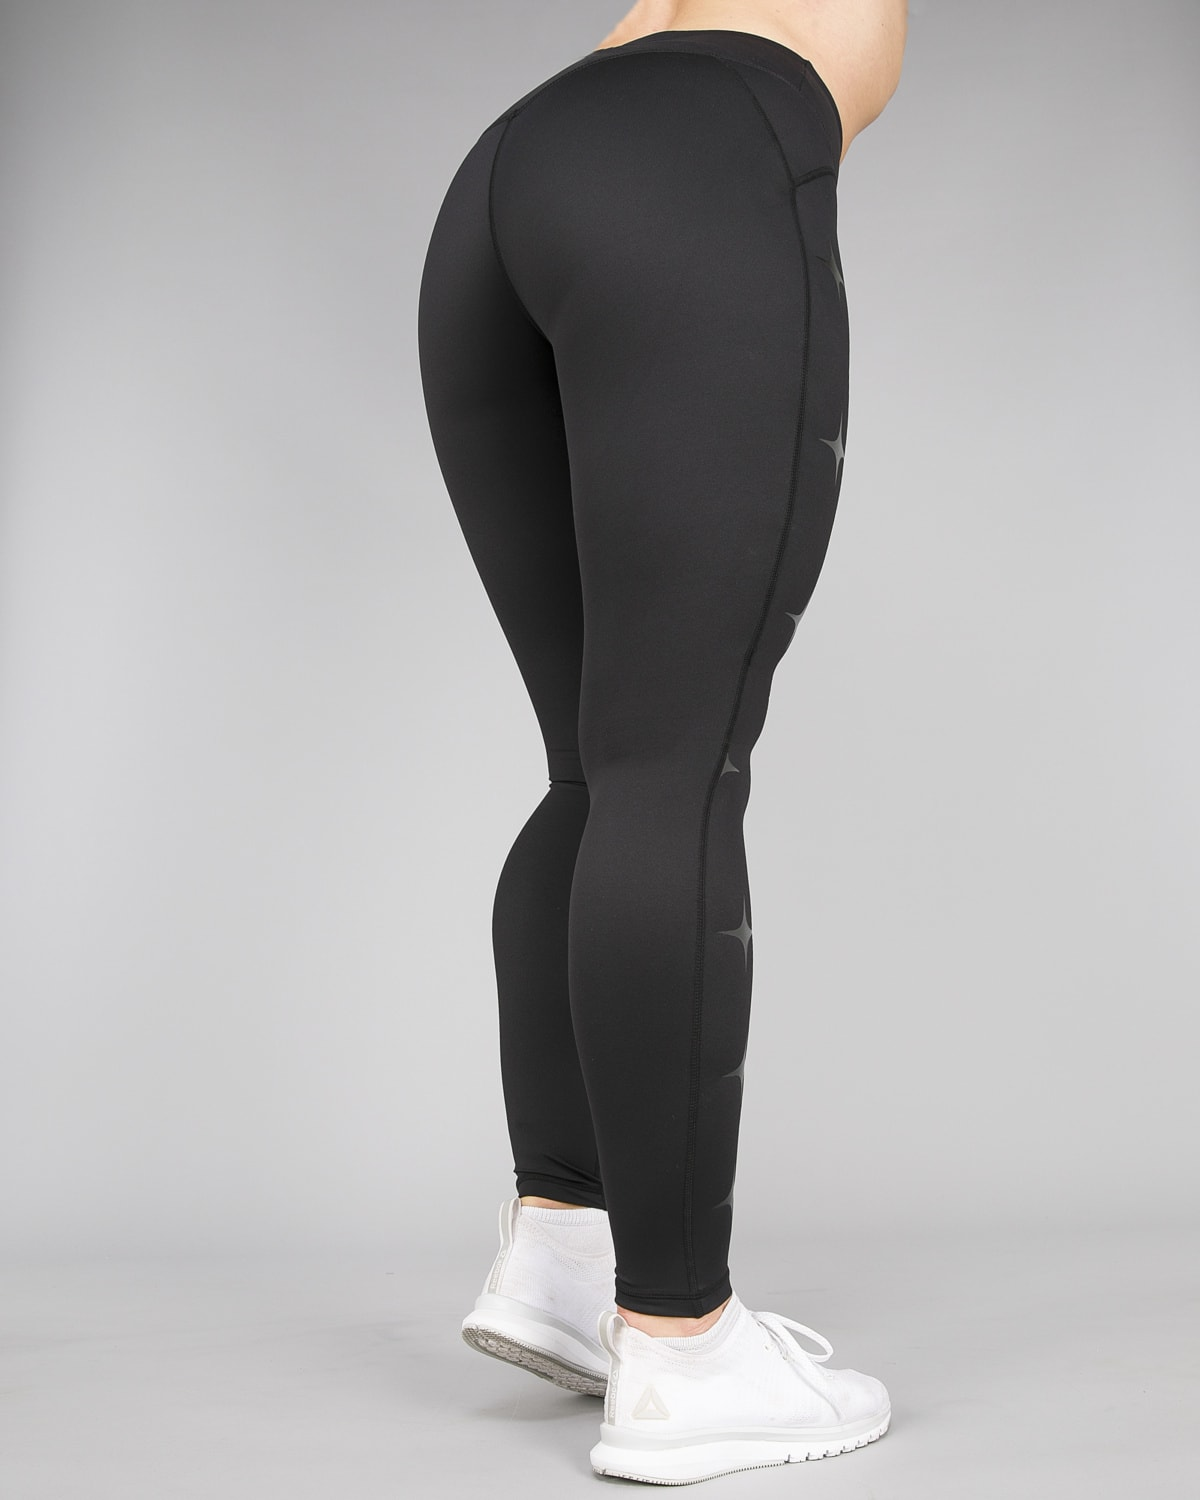 We Are Fit Star Black Tights4